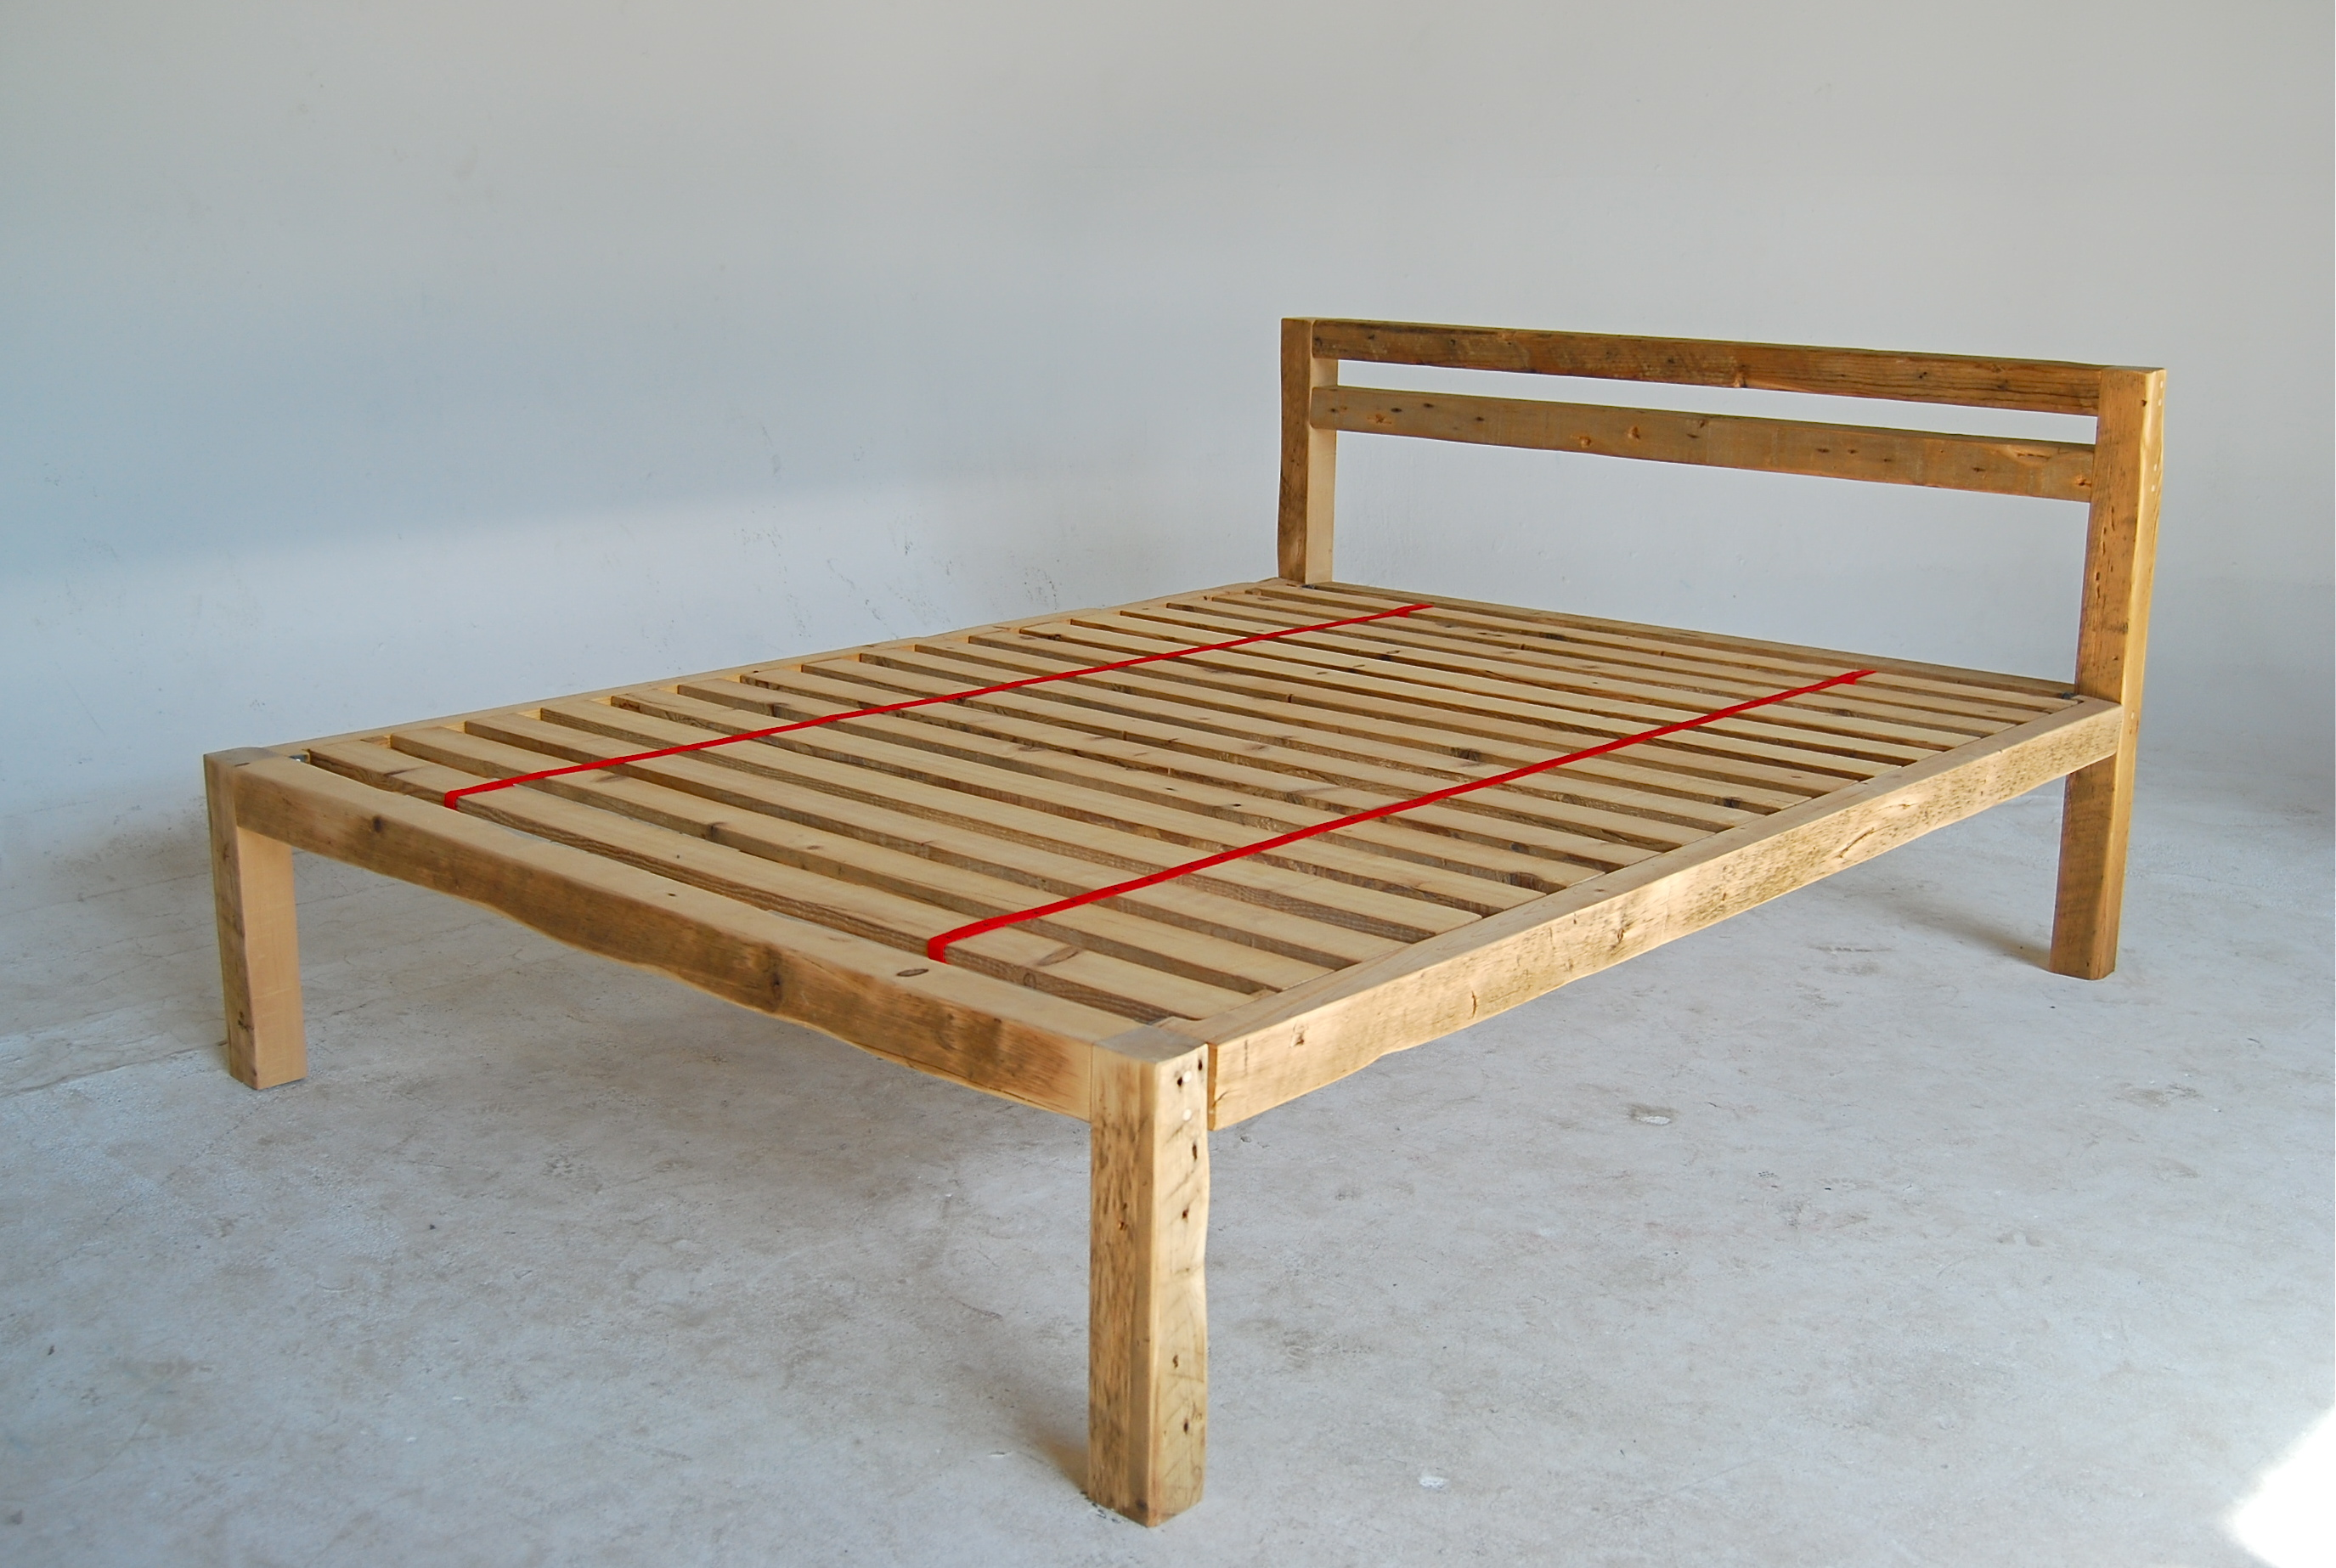 Woodworking Making A Bed Frame